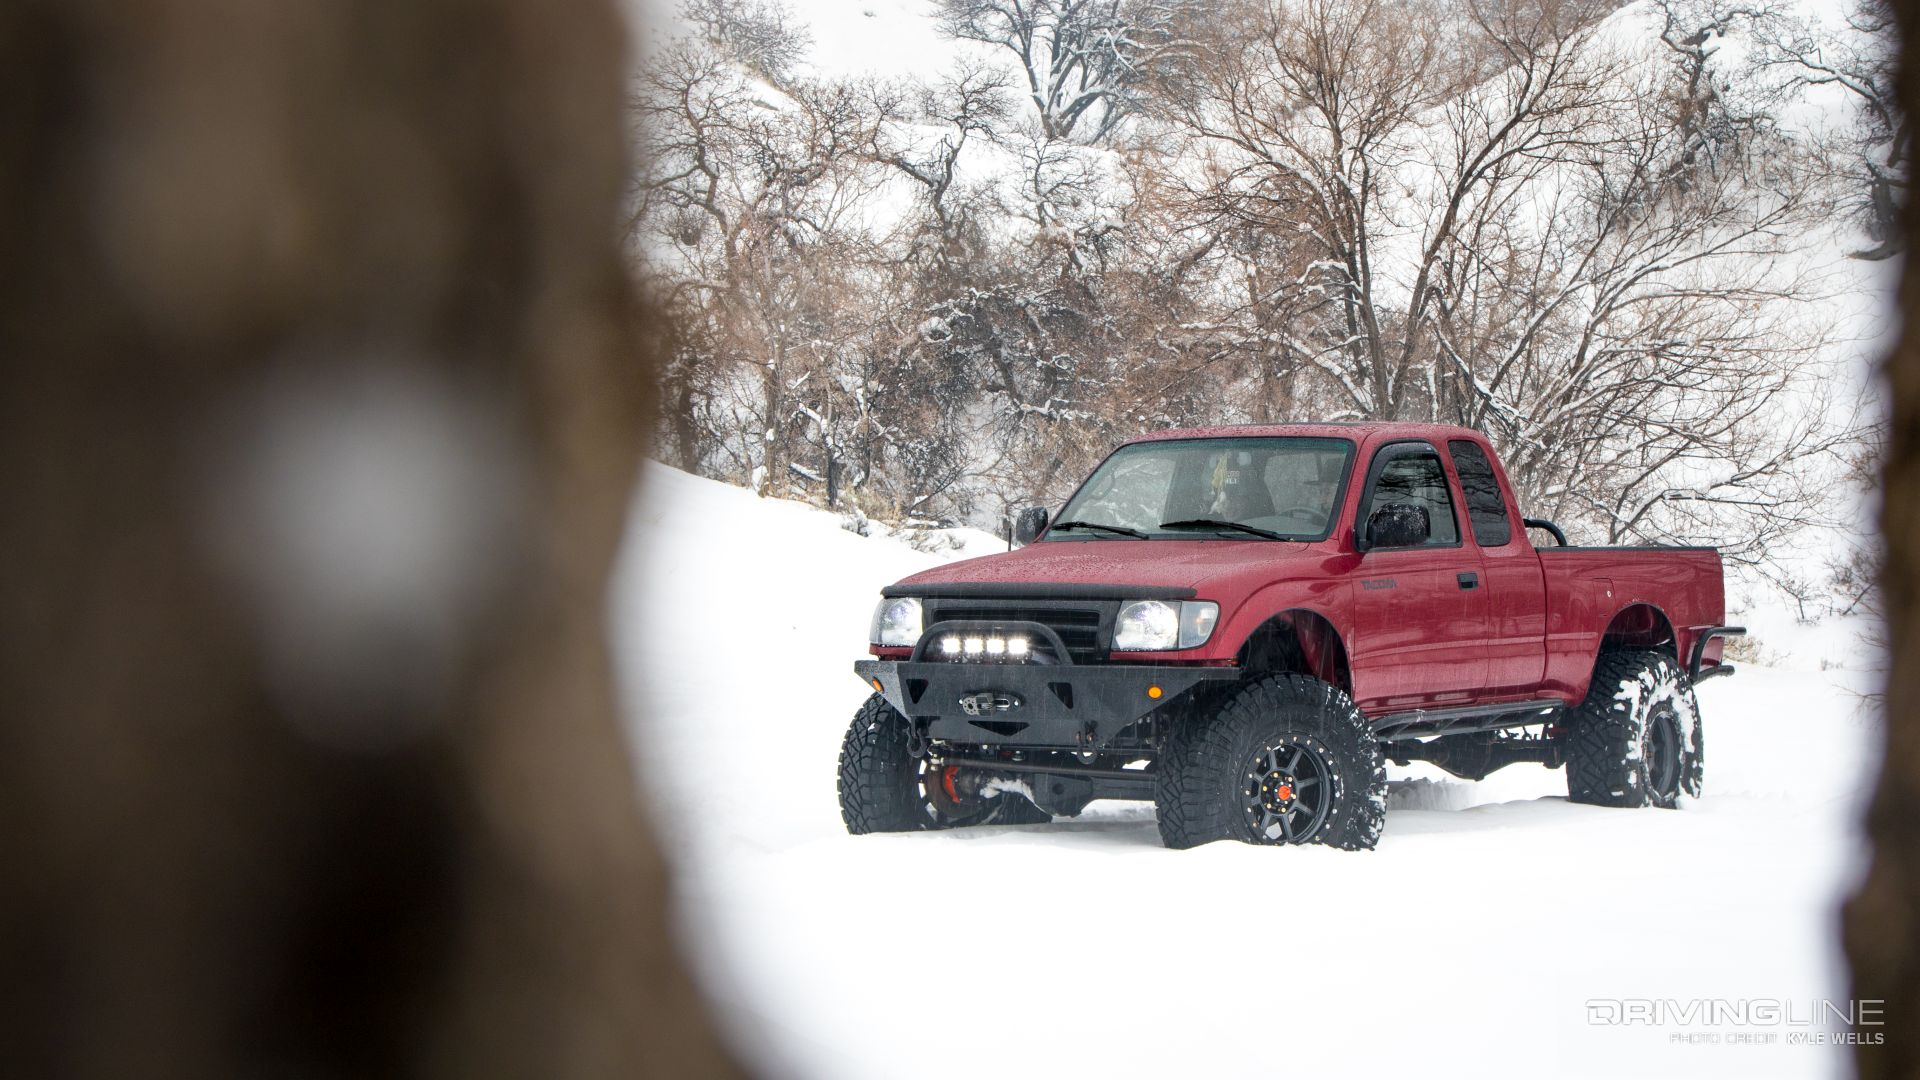 Supreme Taco: A Solid-Axle 2000 Toyota Tacoma Built to Trail